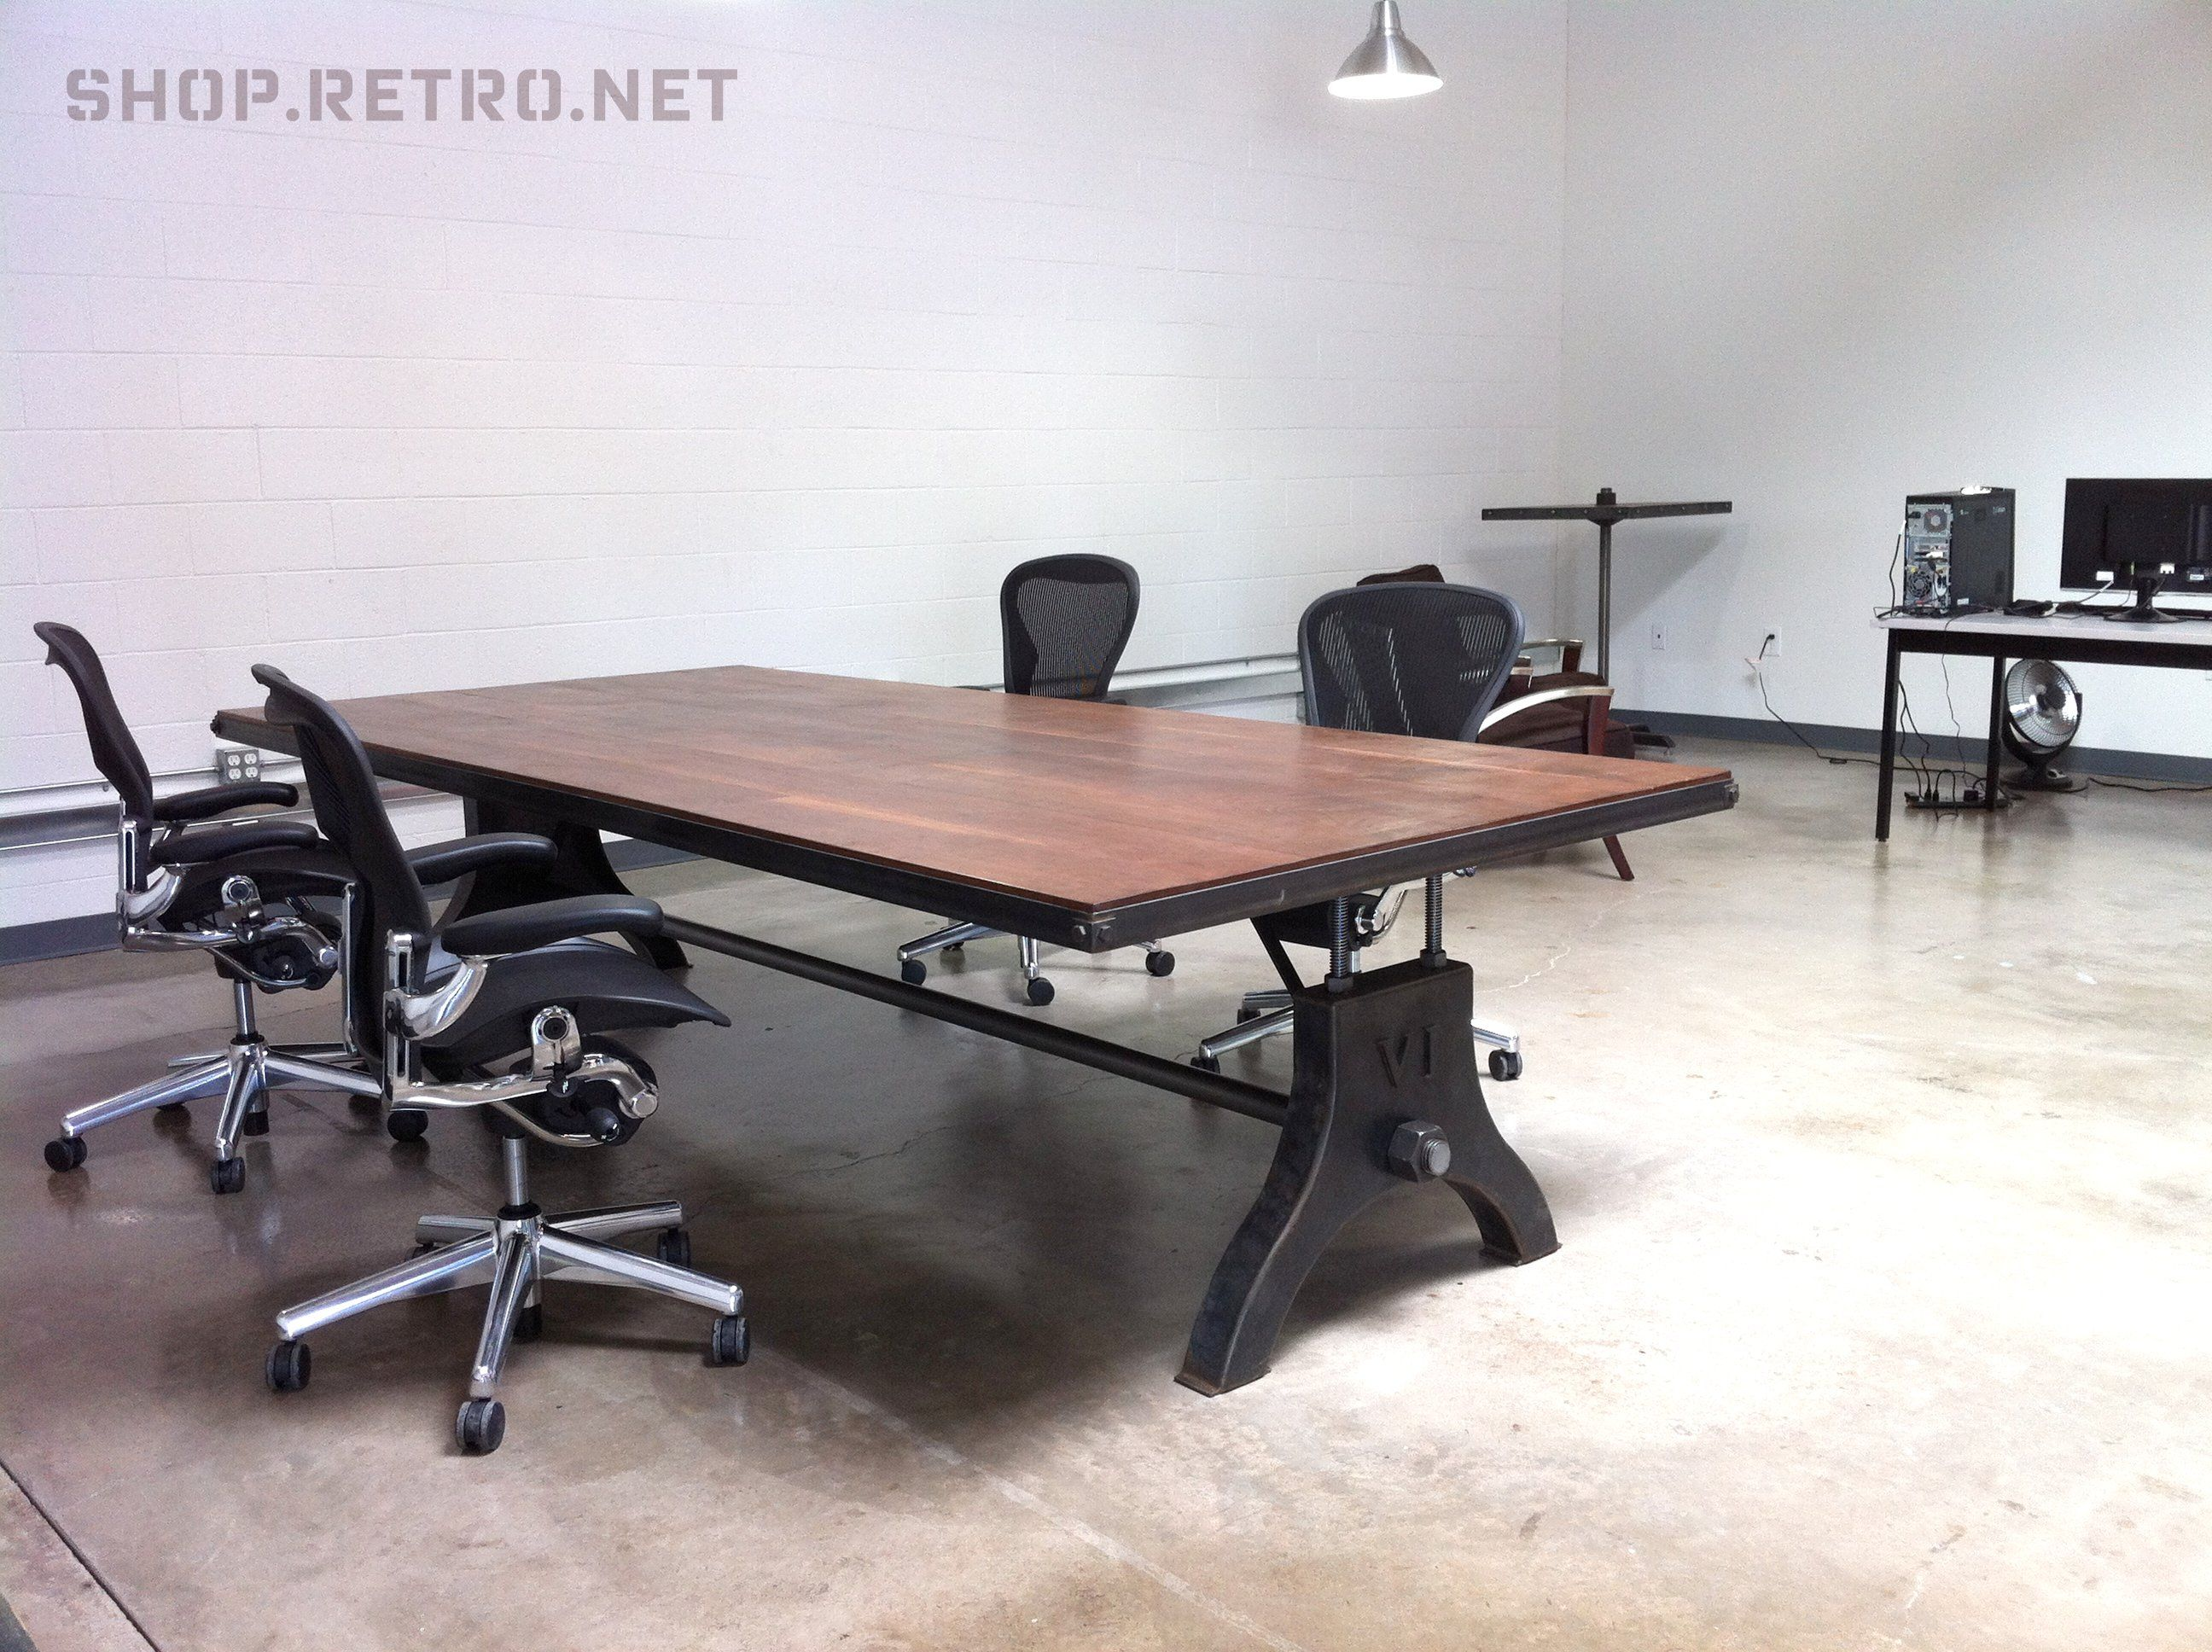 Hure conference table with faux crank vintage industrial furniture - Hure Work Table With A Walnut Top Chairs Are Aeron By Herman Miller